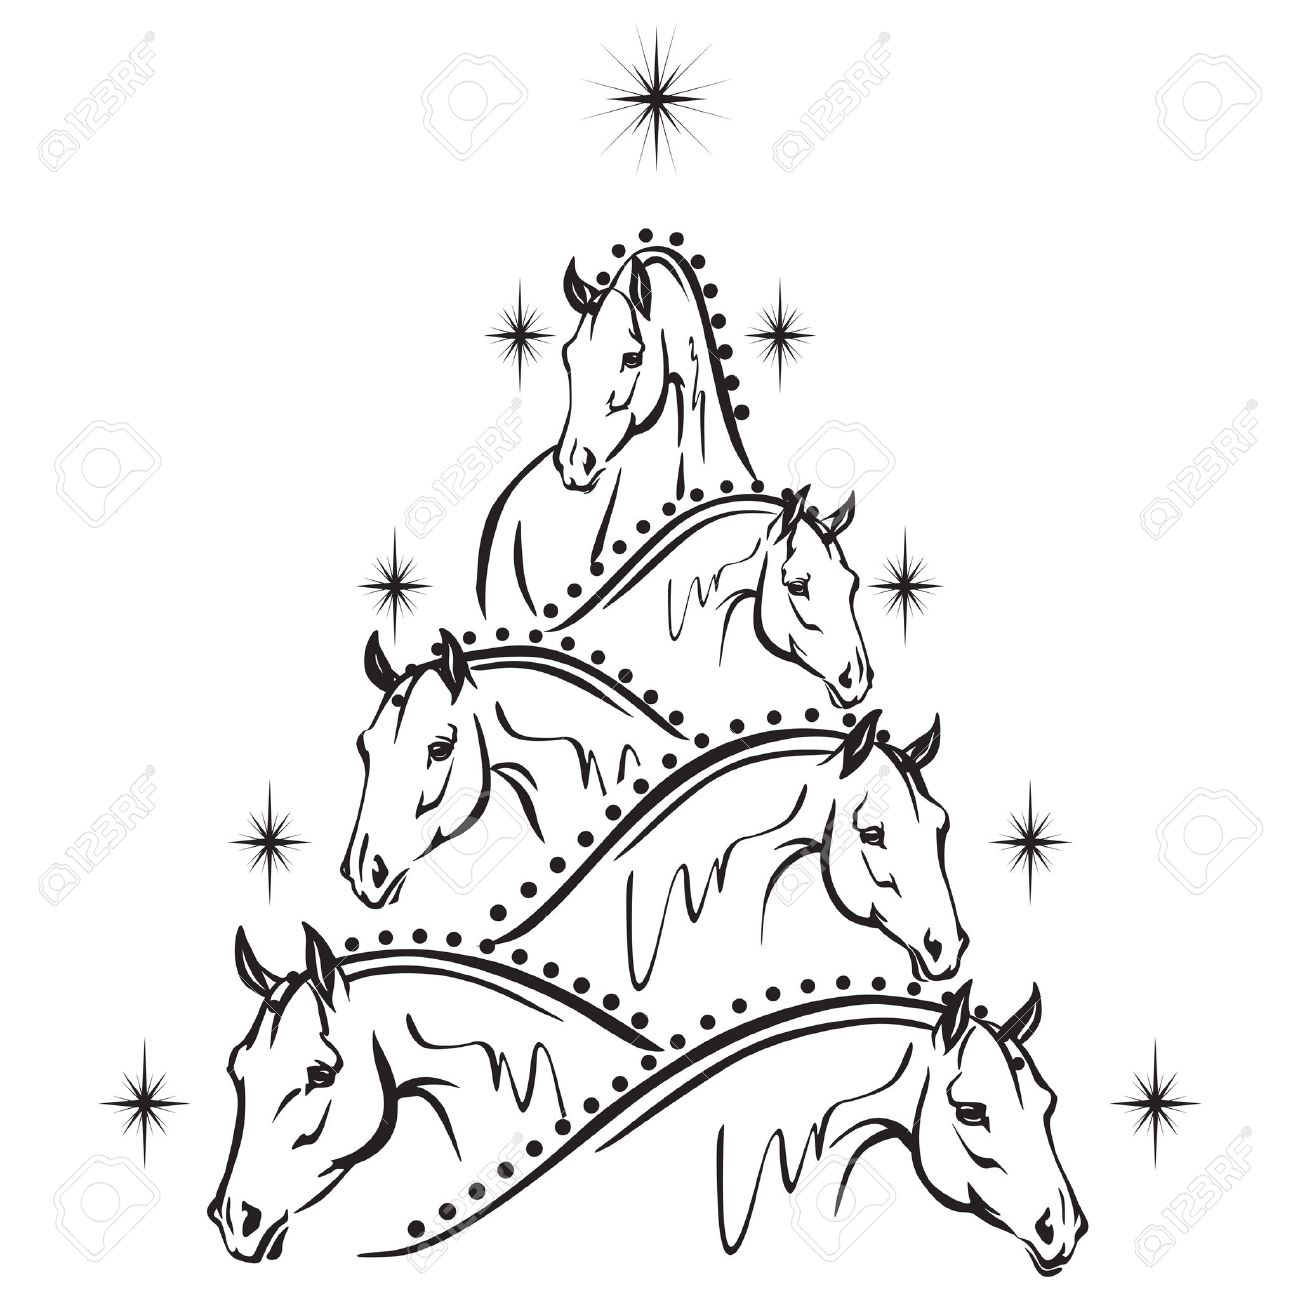 Horse Lovers Christmas Tree Sport Horses Royalty Free Cliparts Vectors And Stock Illustration Image 32346657